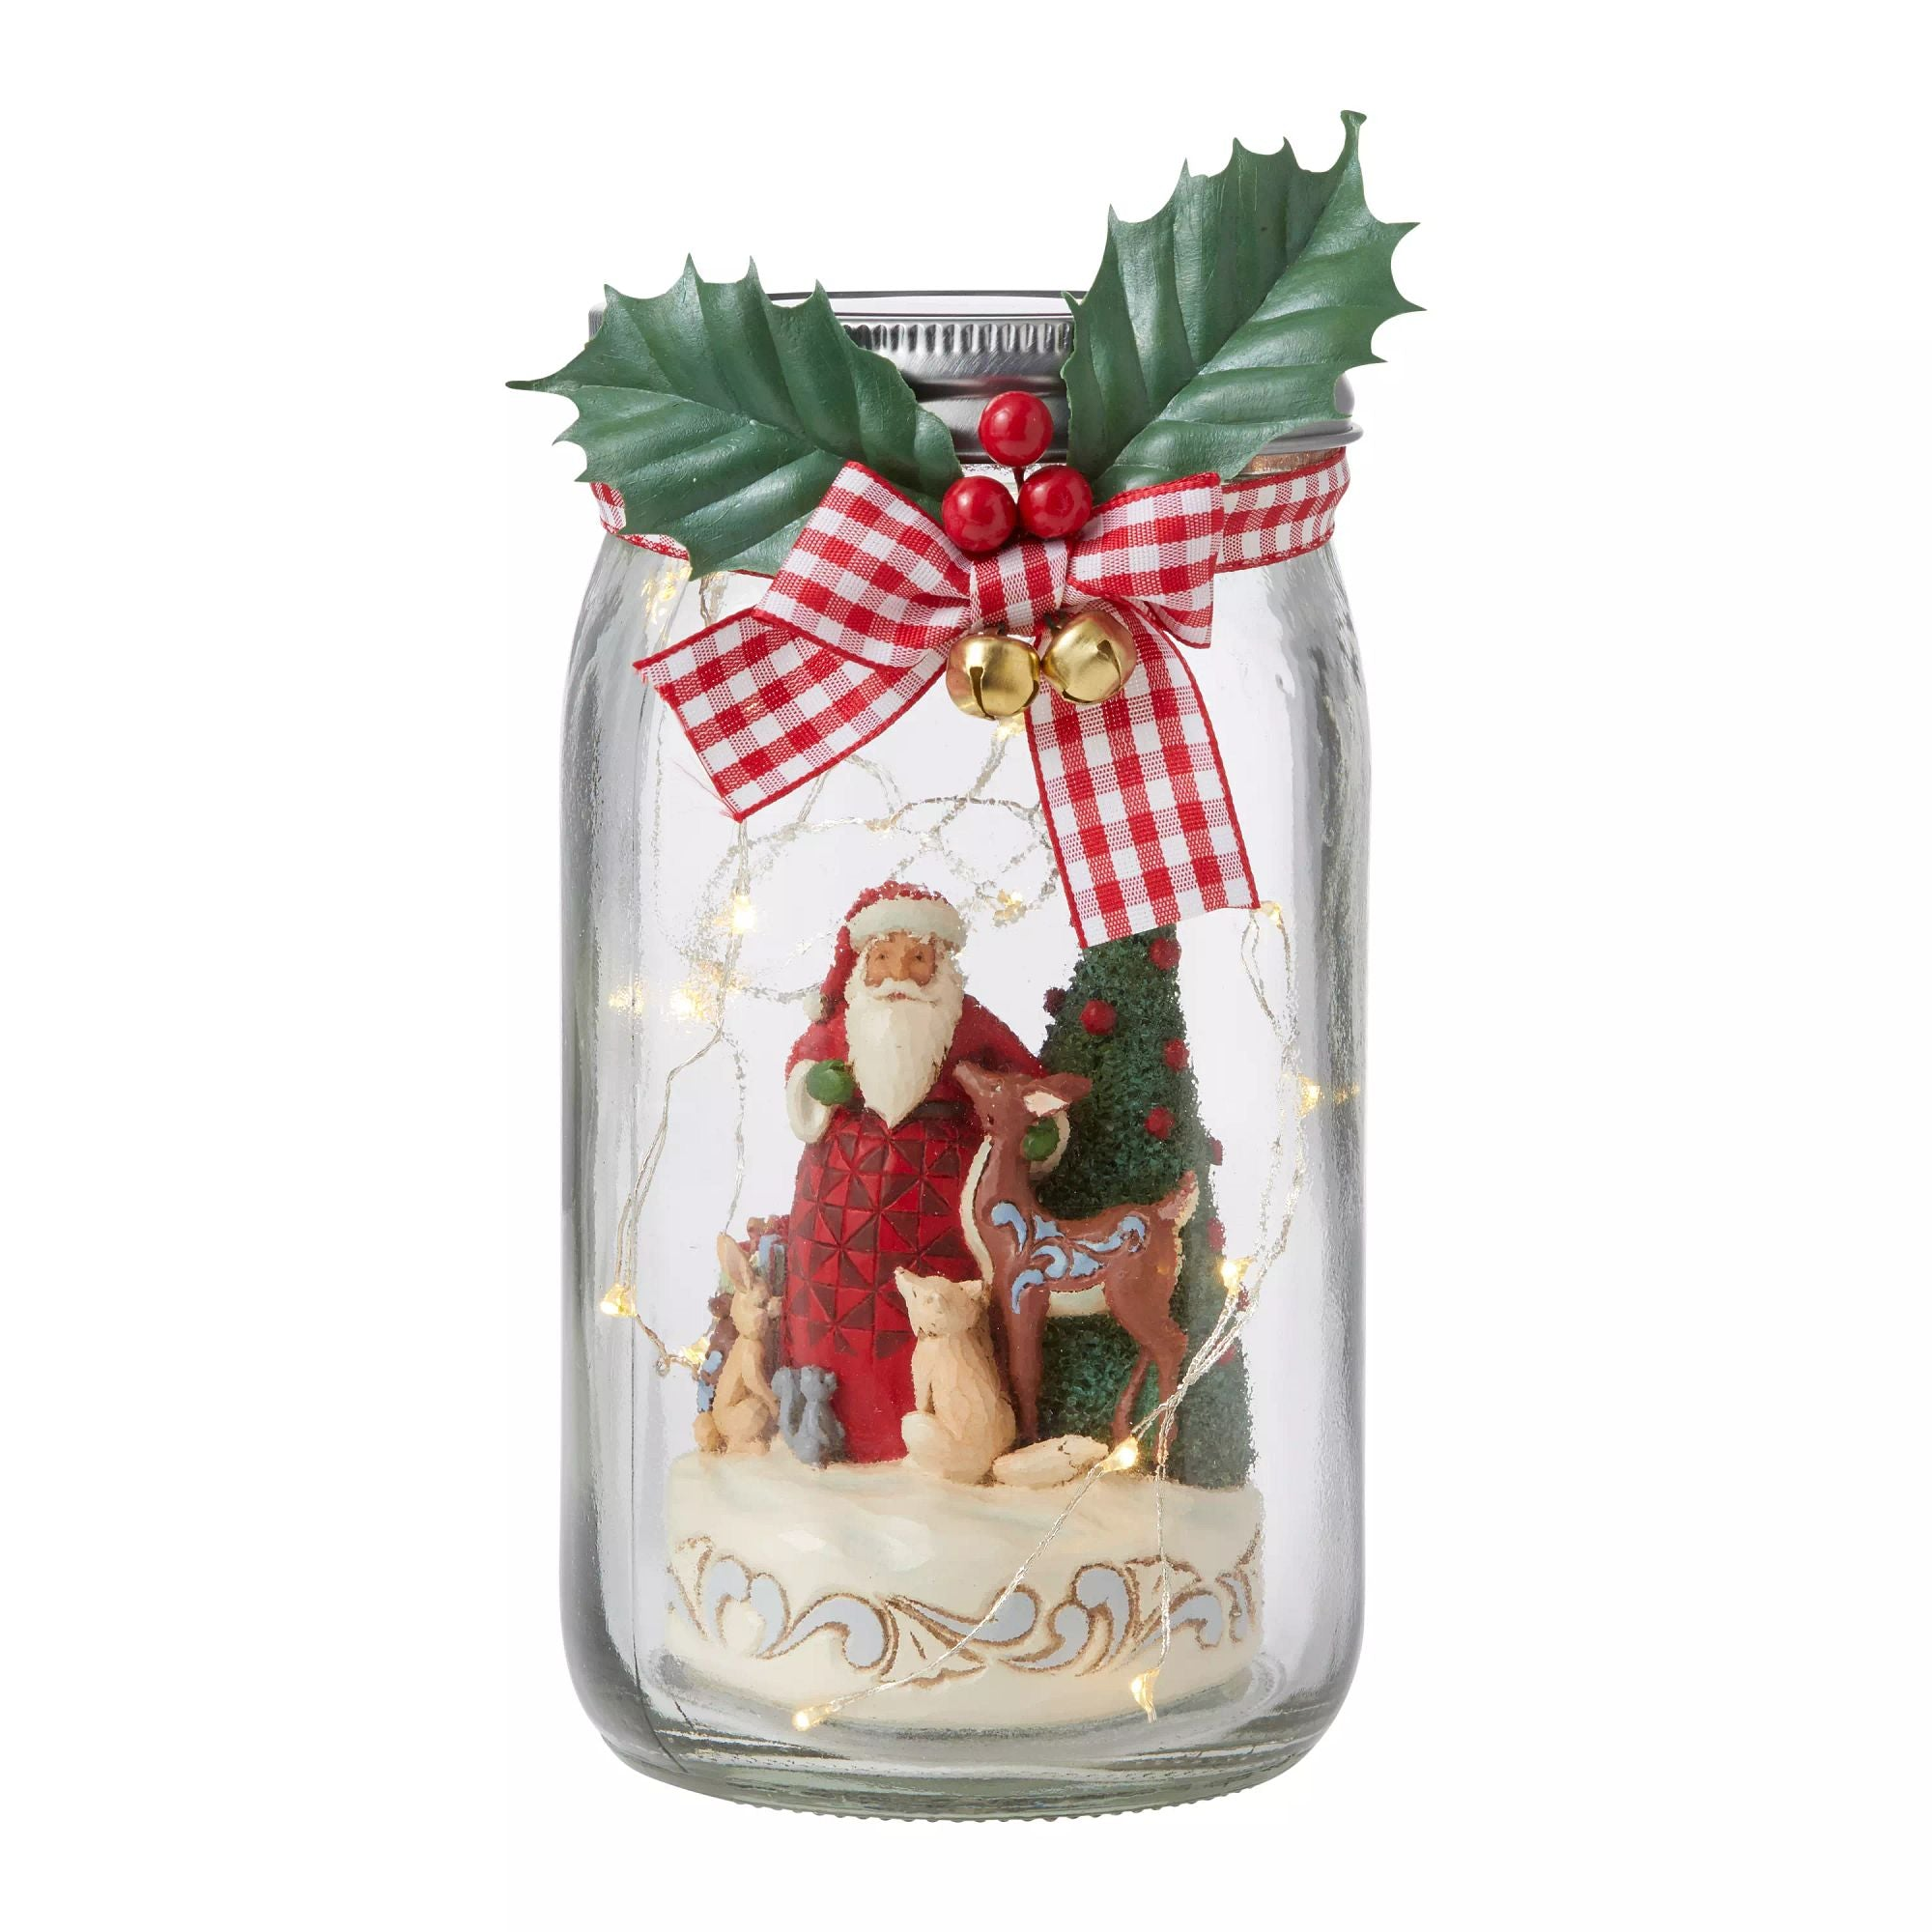 Lighted Glass Jar with Santa